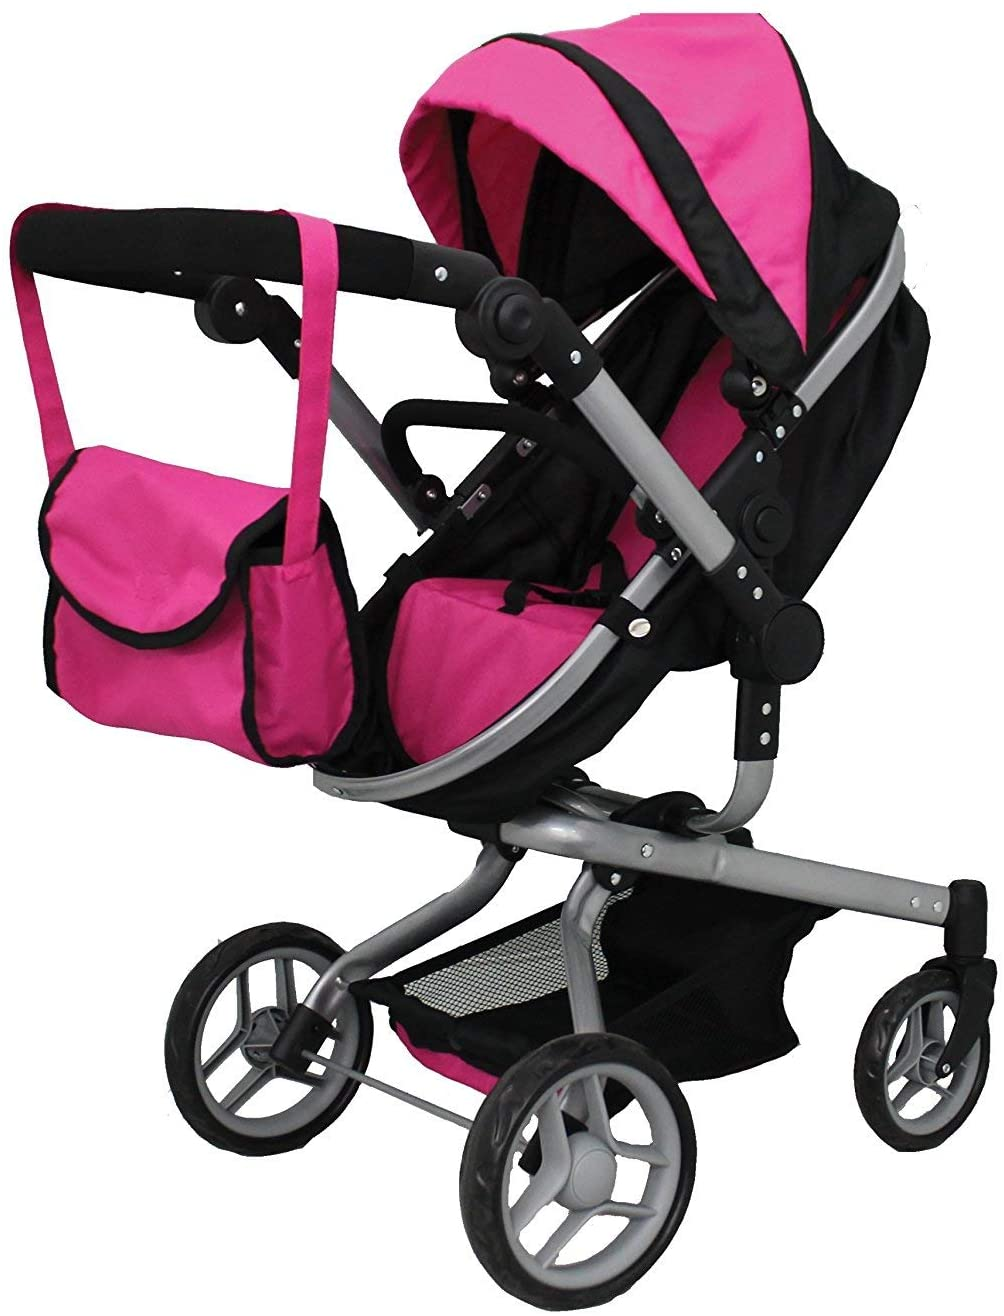 Mommy and me 2 in 1 Doll stroller Carrier with FREE carriage bag